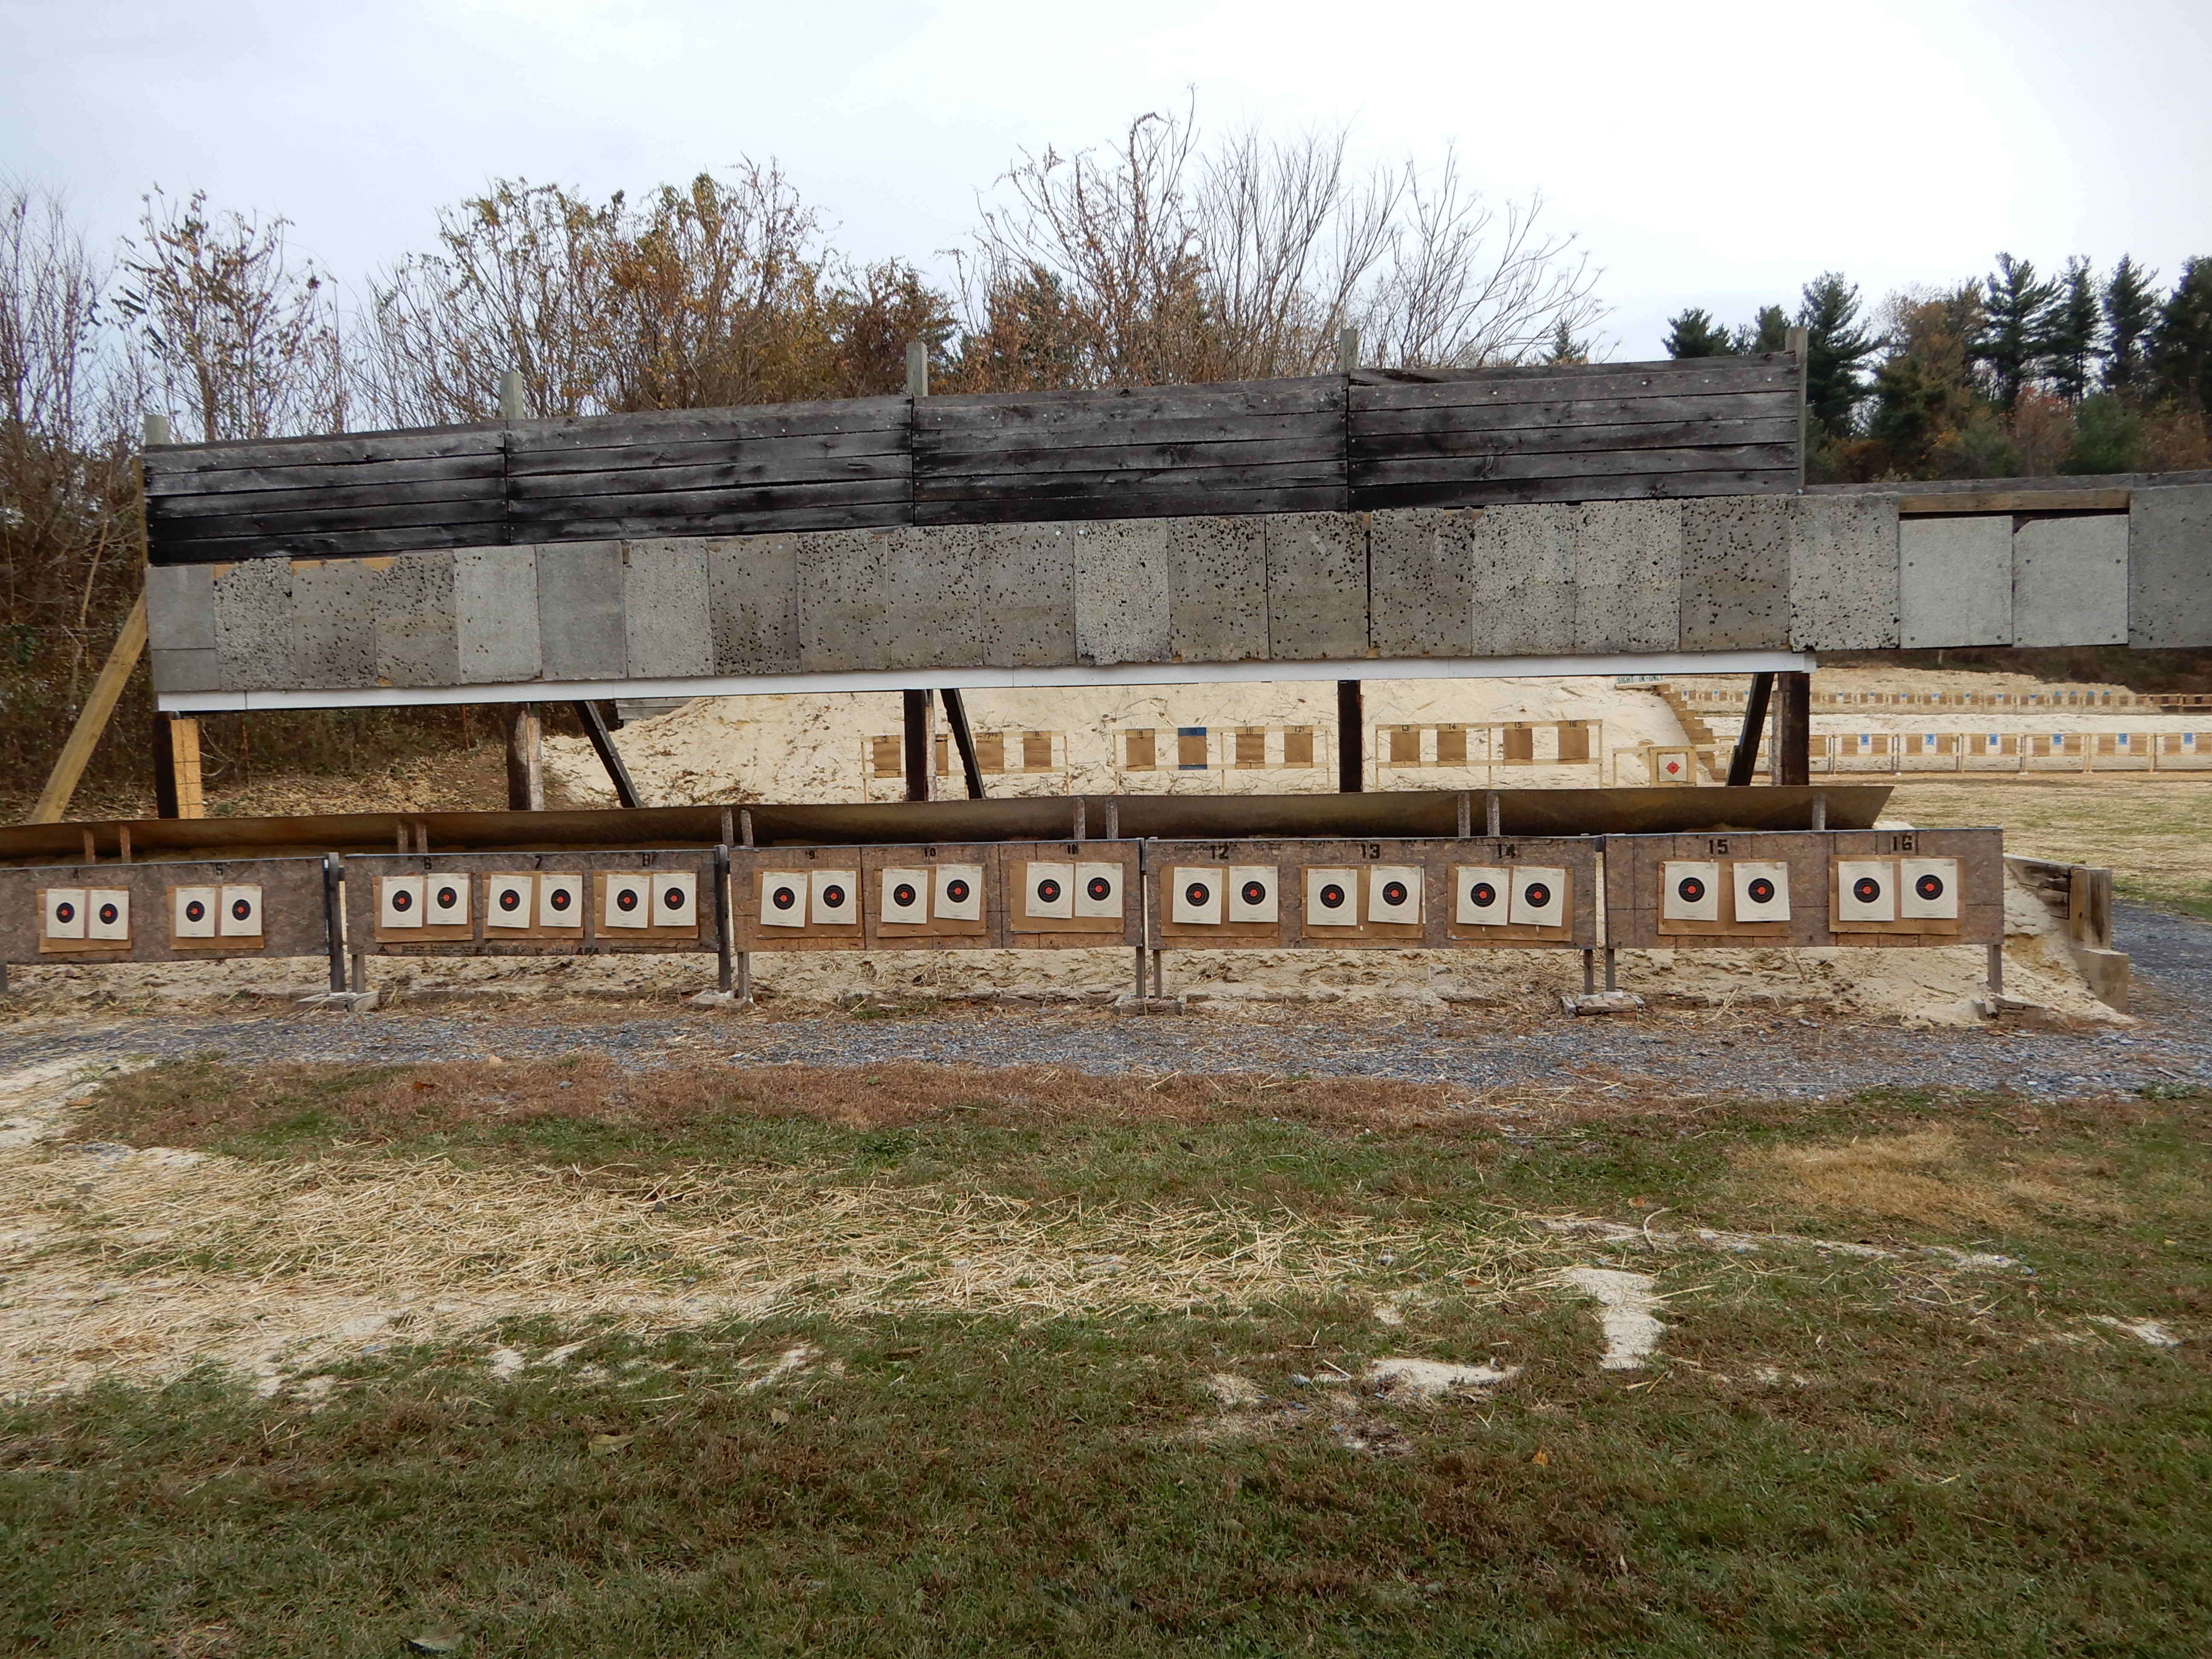 10 and 25 yard Handgun Line